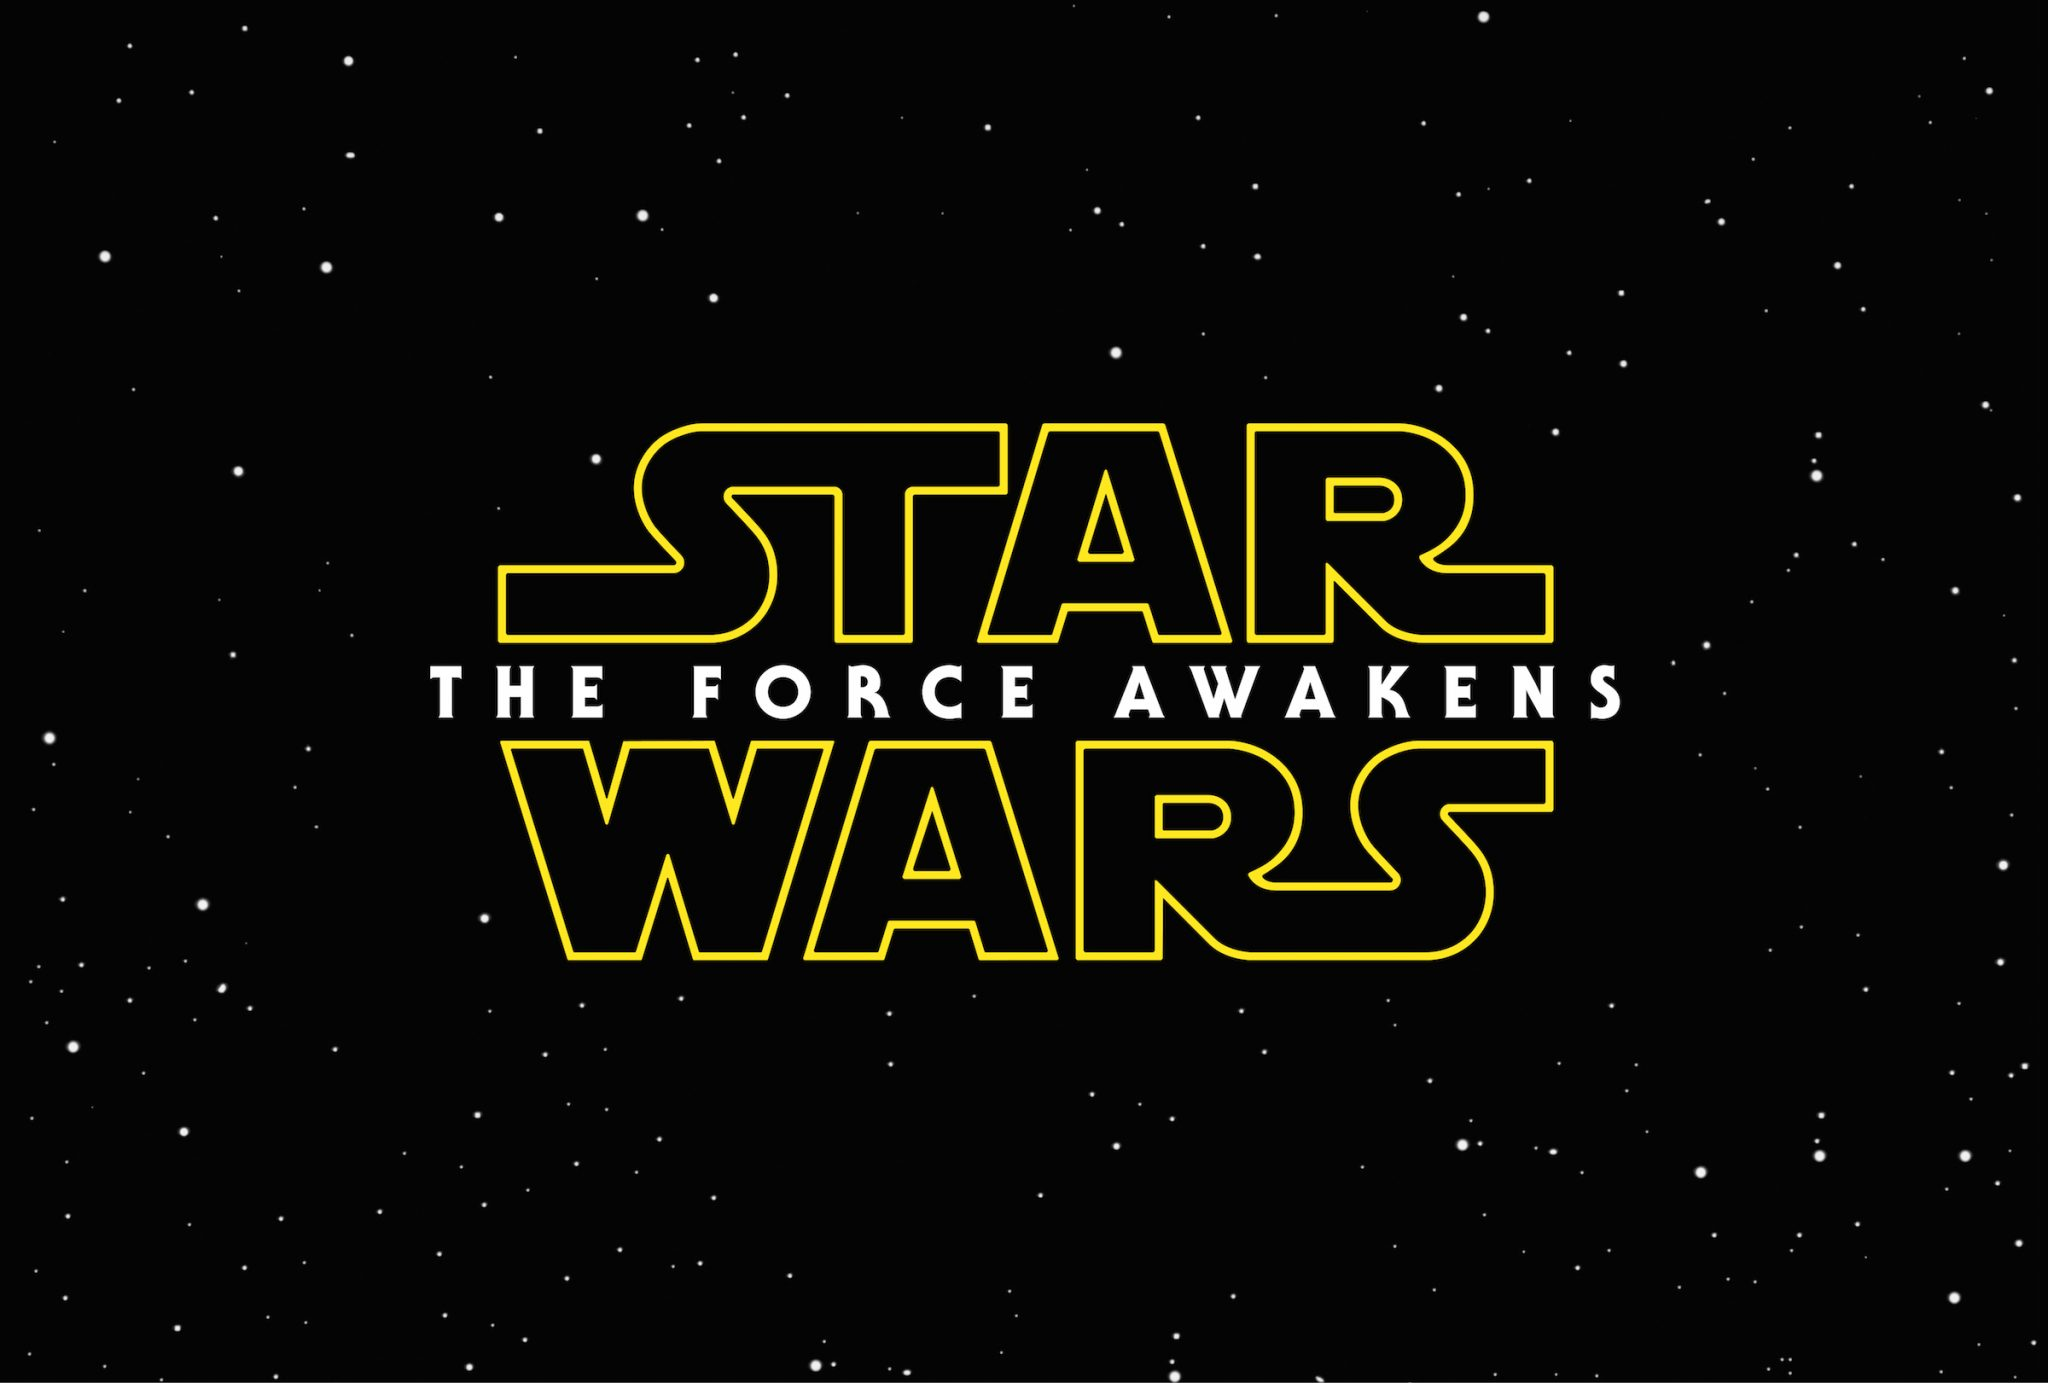 NEW STAR WARS TRAILER!